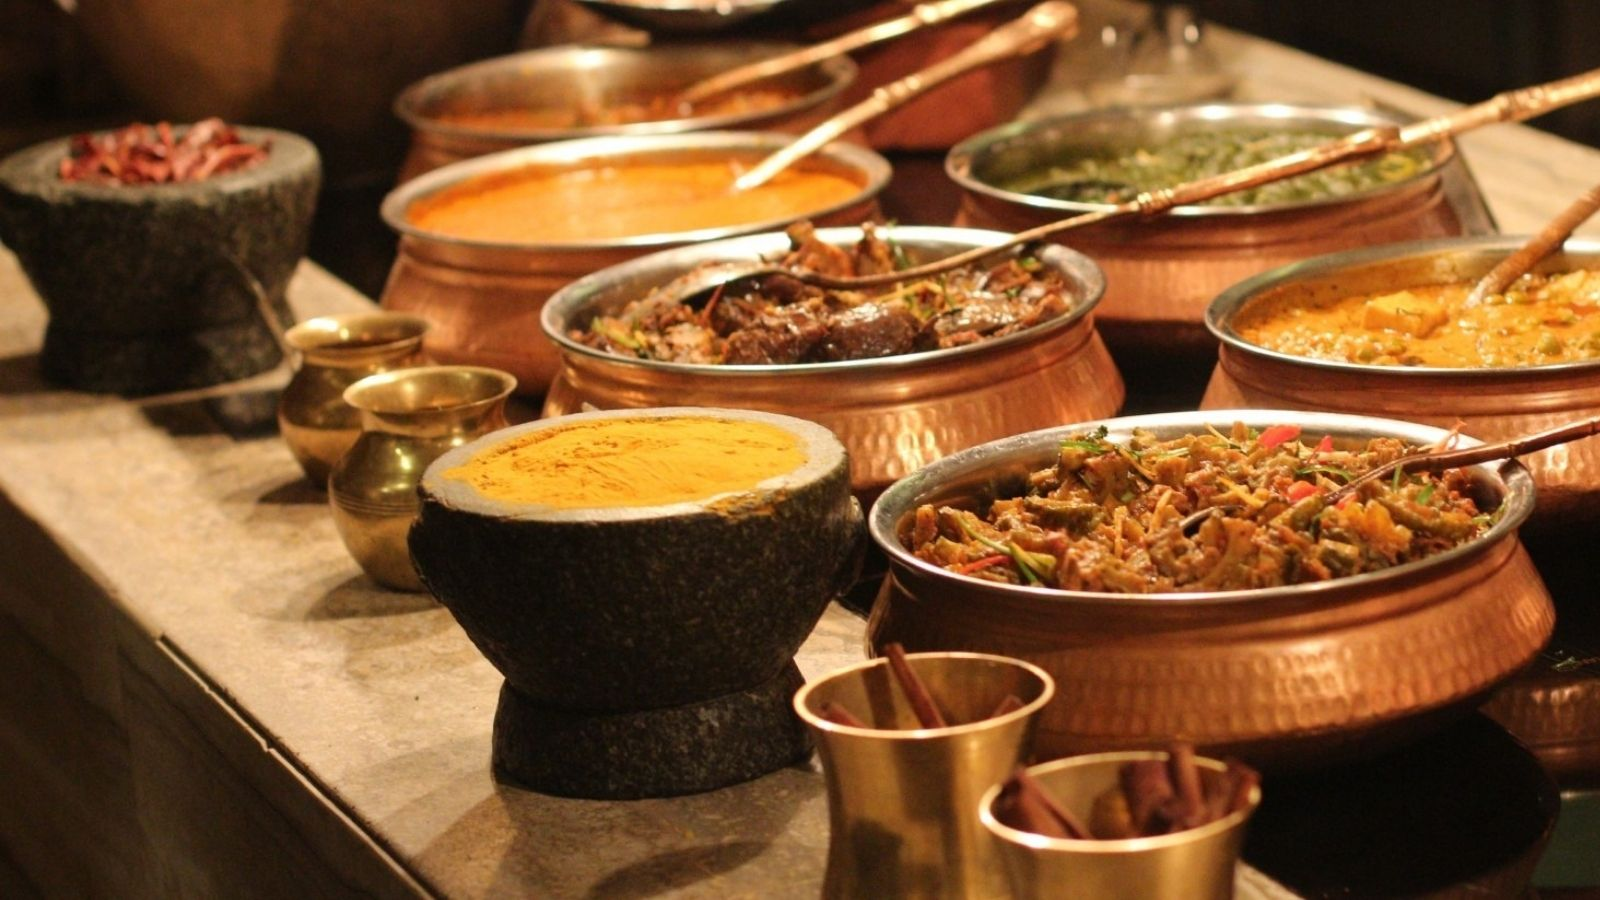 wonders of a nutrient-rich Indian curry